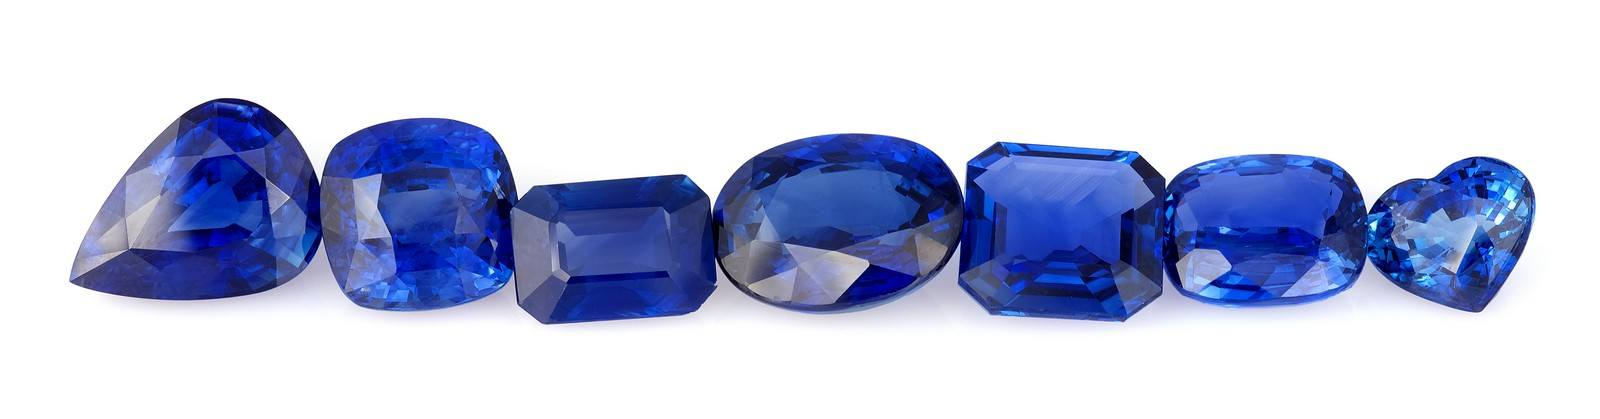 Natural blue sapphire gemstone dealer and sales